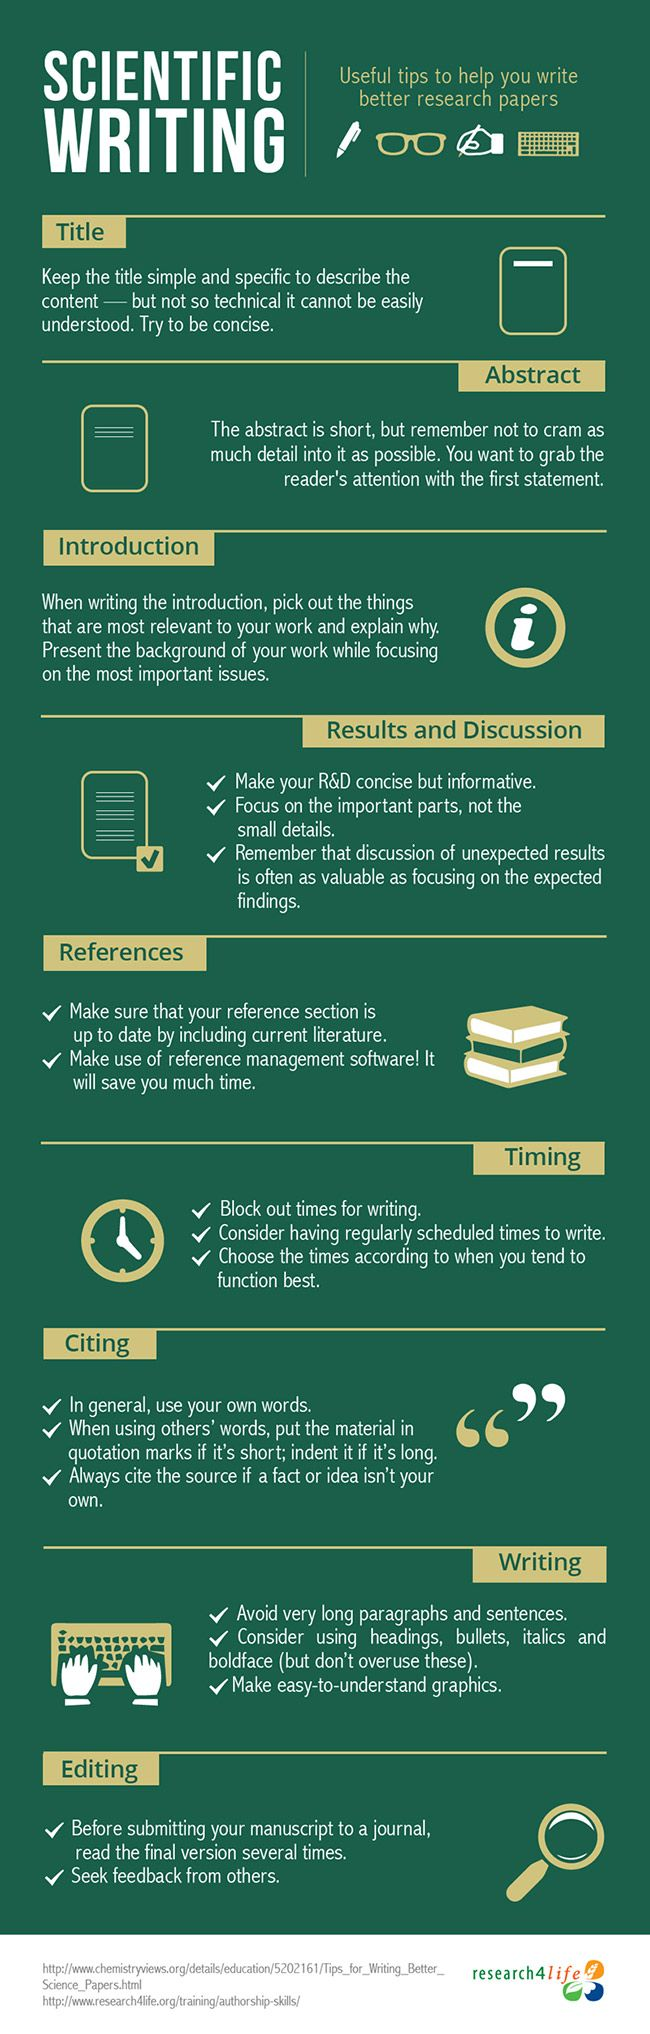 Best Essays In English Best Ideas About Scientific Writing Academic Infographic How To Write  Better Science Papers Elsevier Connect How To Write An Essay  Christmas Essay In English also Thesis For Persuasive Essay How To Start A Science Essay How To Write A Synthesis Essay Steps  Essay Writing High School